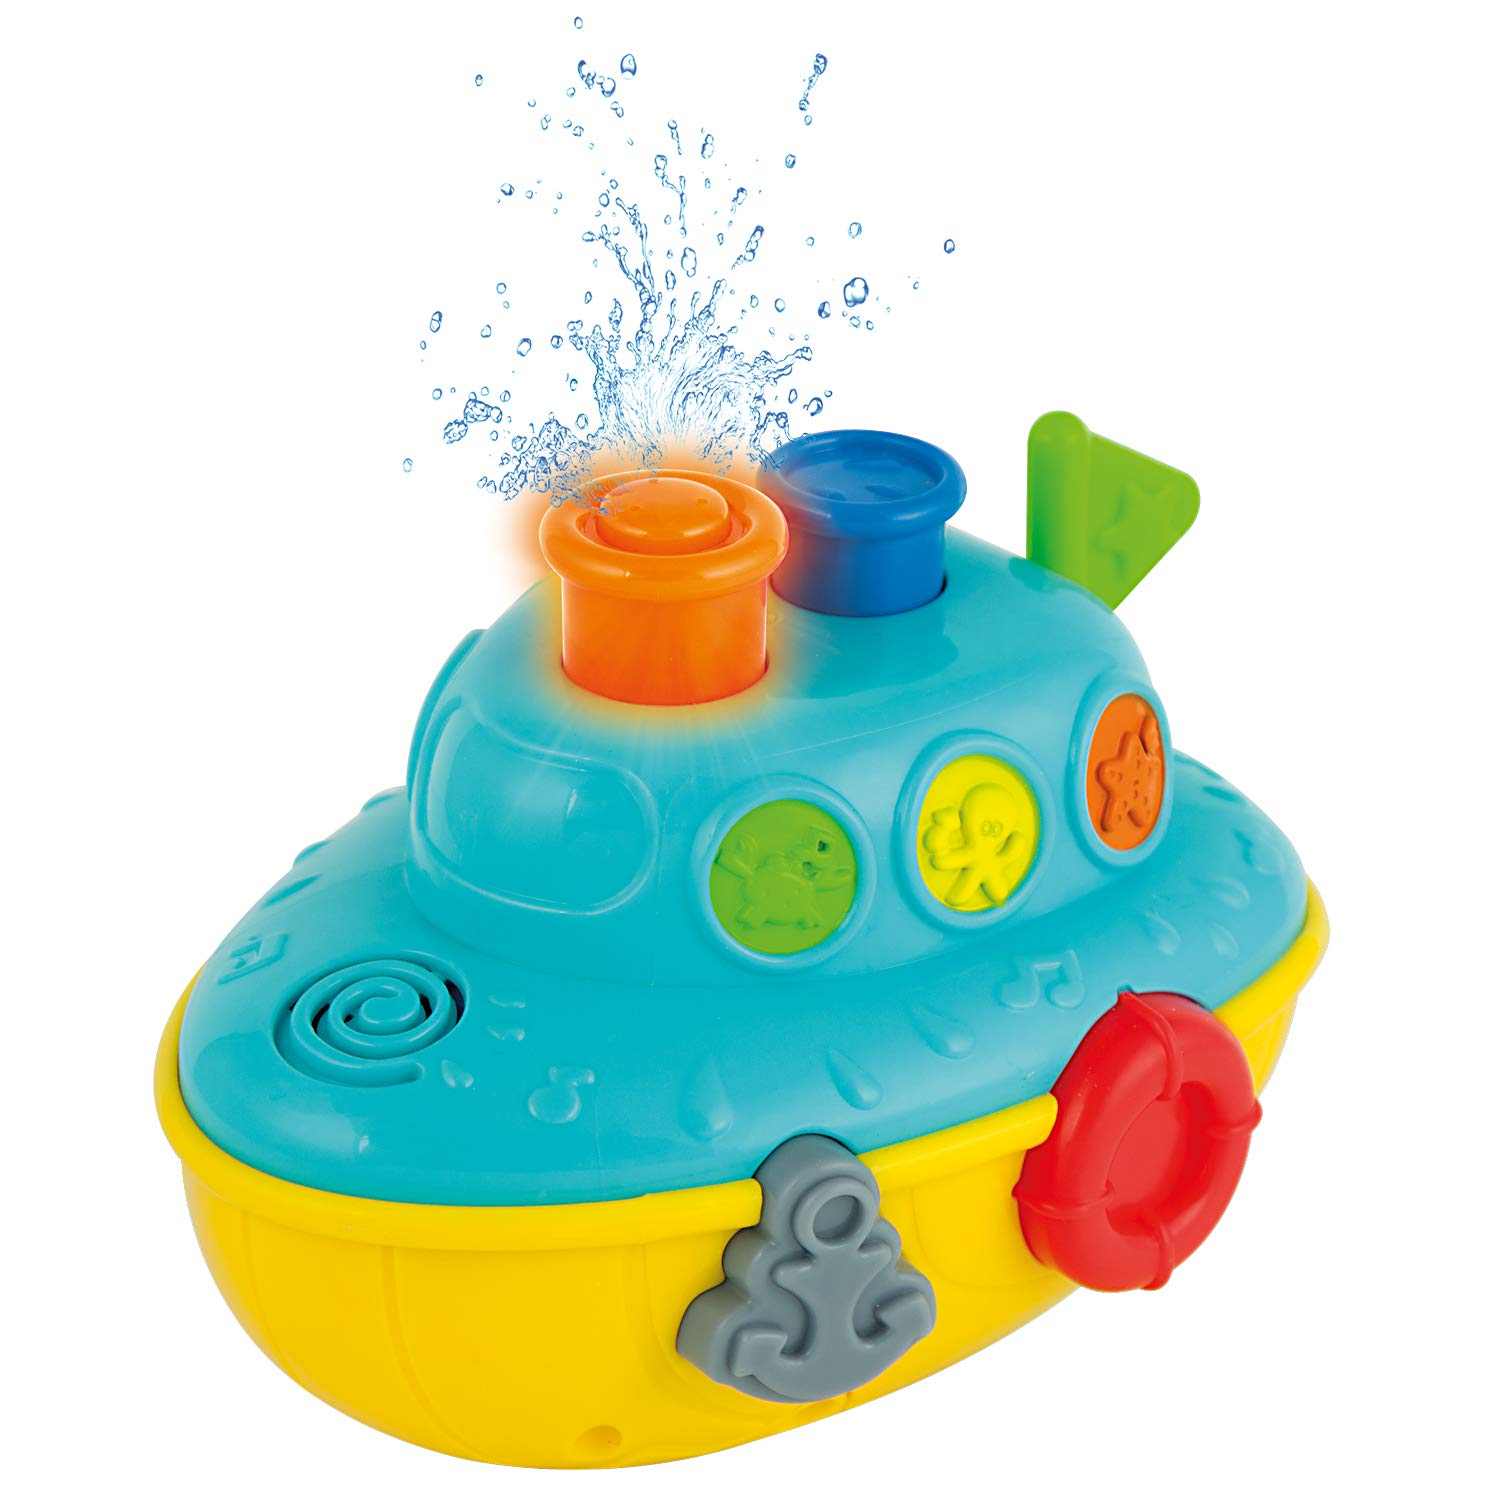 KiddoLab Musical Bath Boat. Floating Water Toy with Flashing Lights. Bath Toys for Toddlers for Baby Bathtub Playtime Fun! 9 Months+